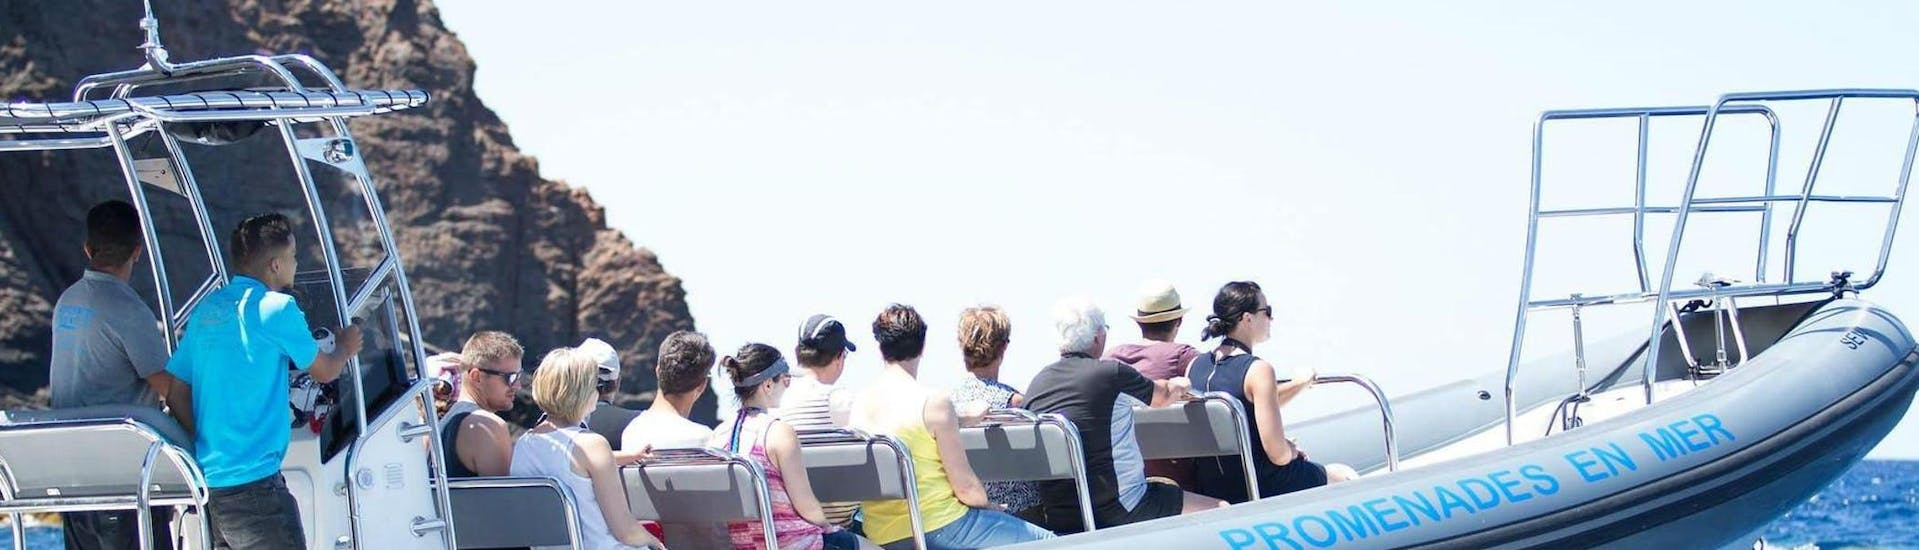 A group is enjoying the Boat Tour in Golfe de Porto - Grand Tour operated by Avventu Event's.